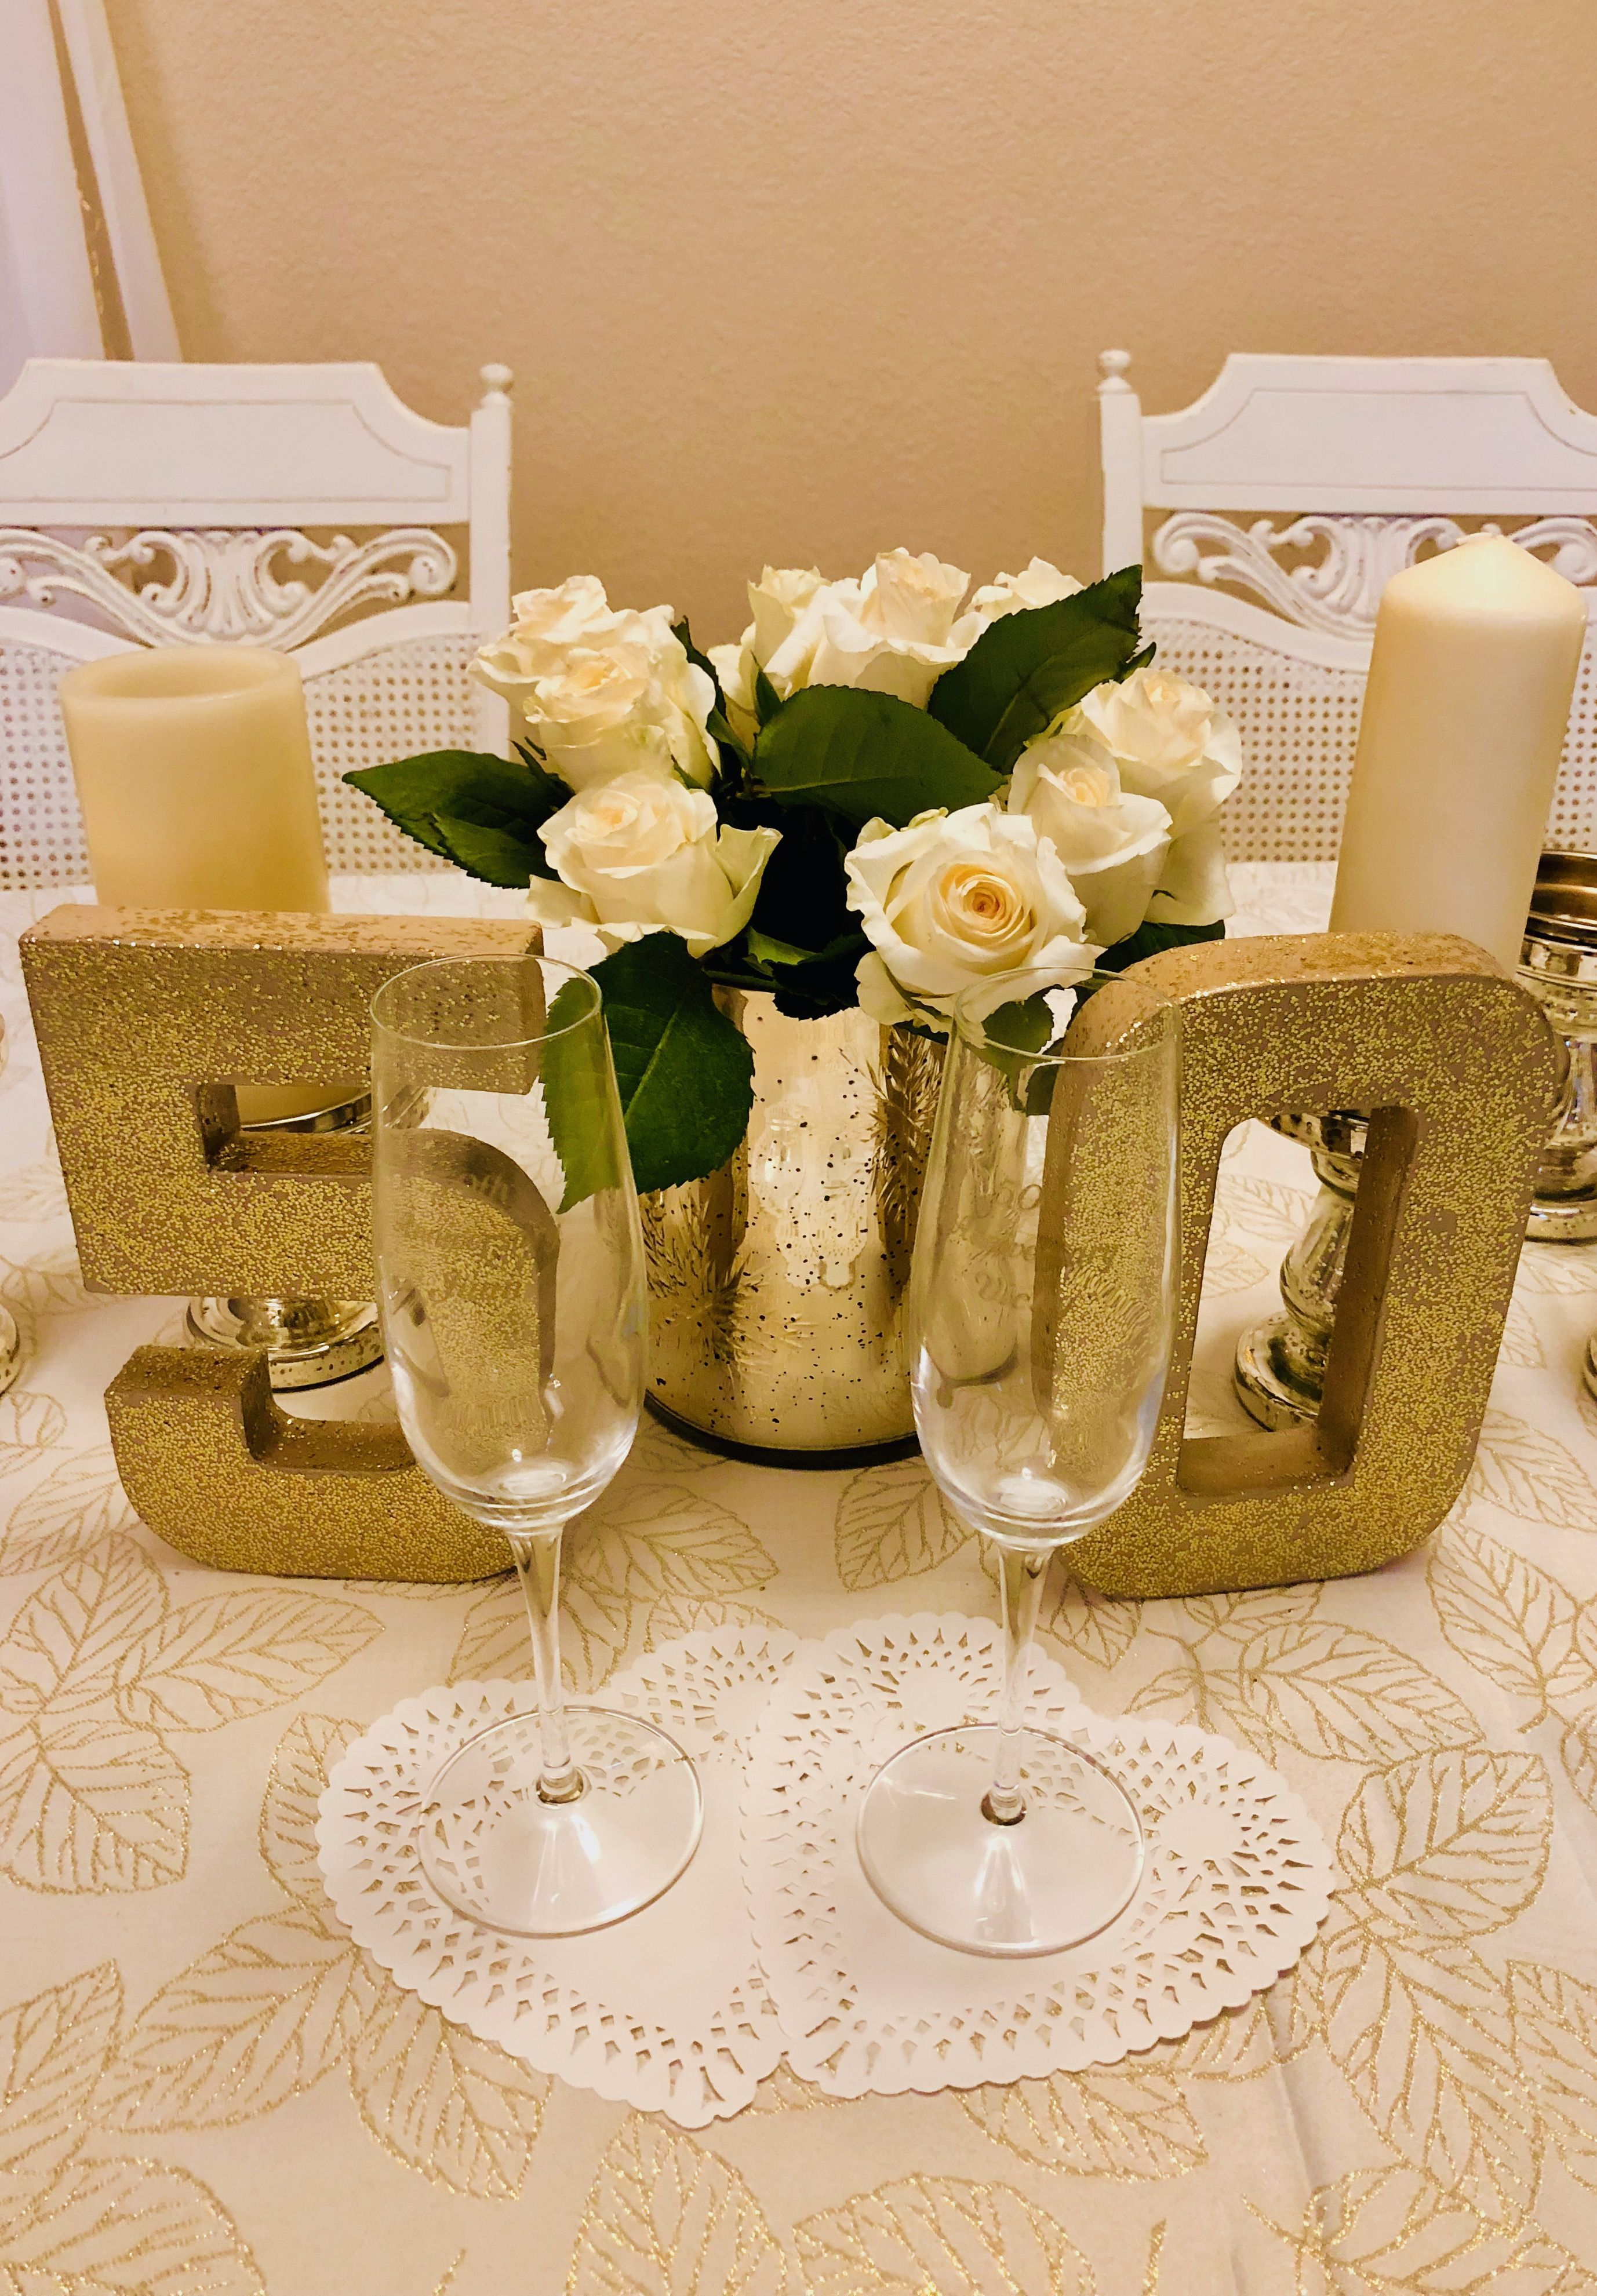 10 Ideas In 2020 50th Wedding Anniversary Decorations